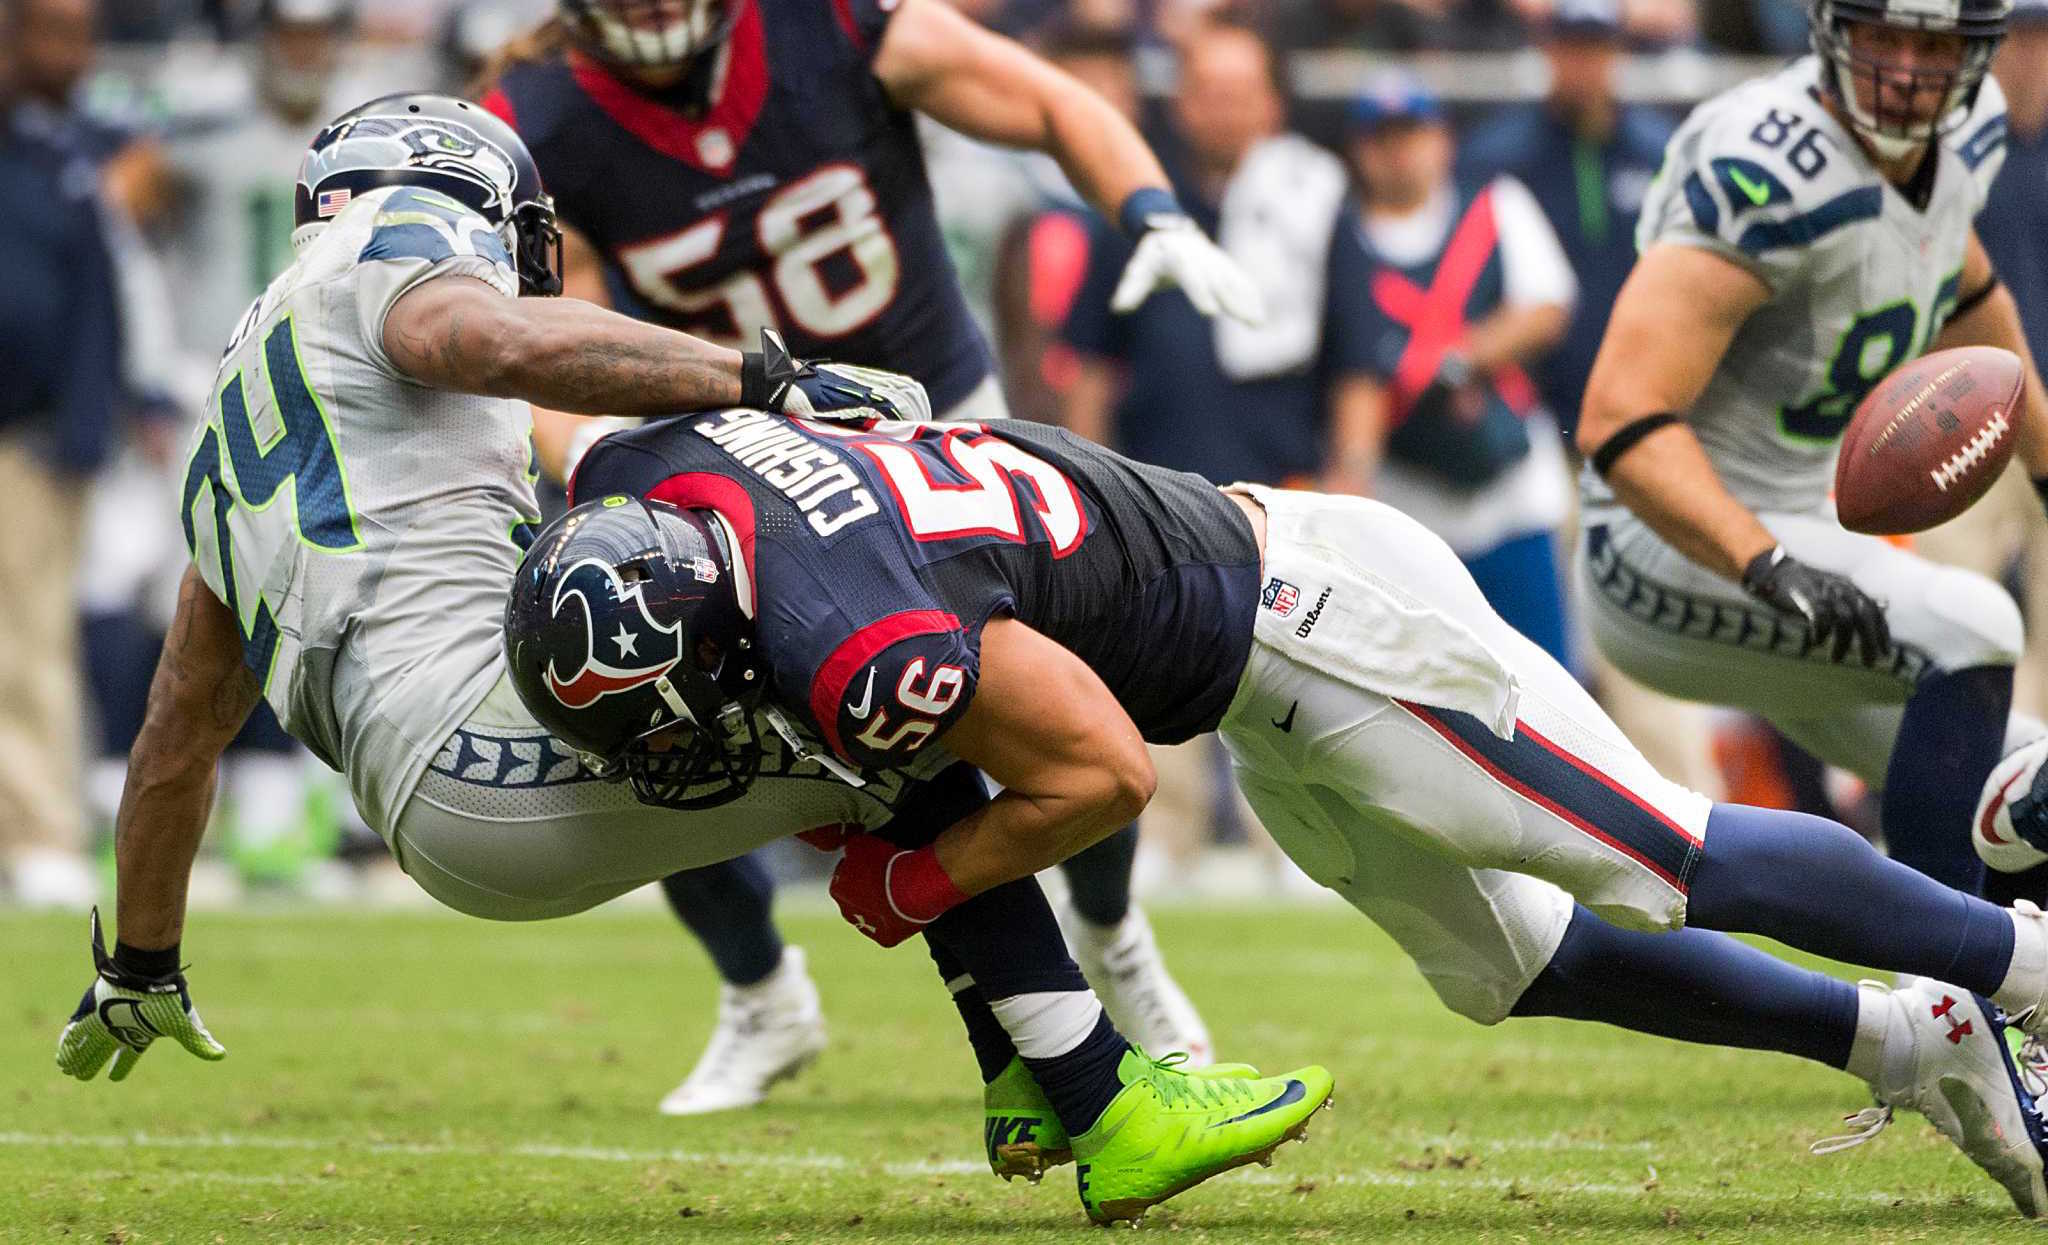 Seattle Seahawks running back Marshawn Lynch (24) fumbles as he is hit by Houston Texans inside linebacker Brian Cushing (56) during the first half of an NFL football game on Sunday, Sept. 29, 2013, in Houston. ( Smiley N. Pool / Houston Chronicle )